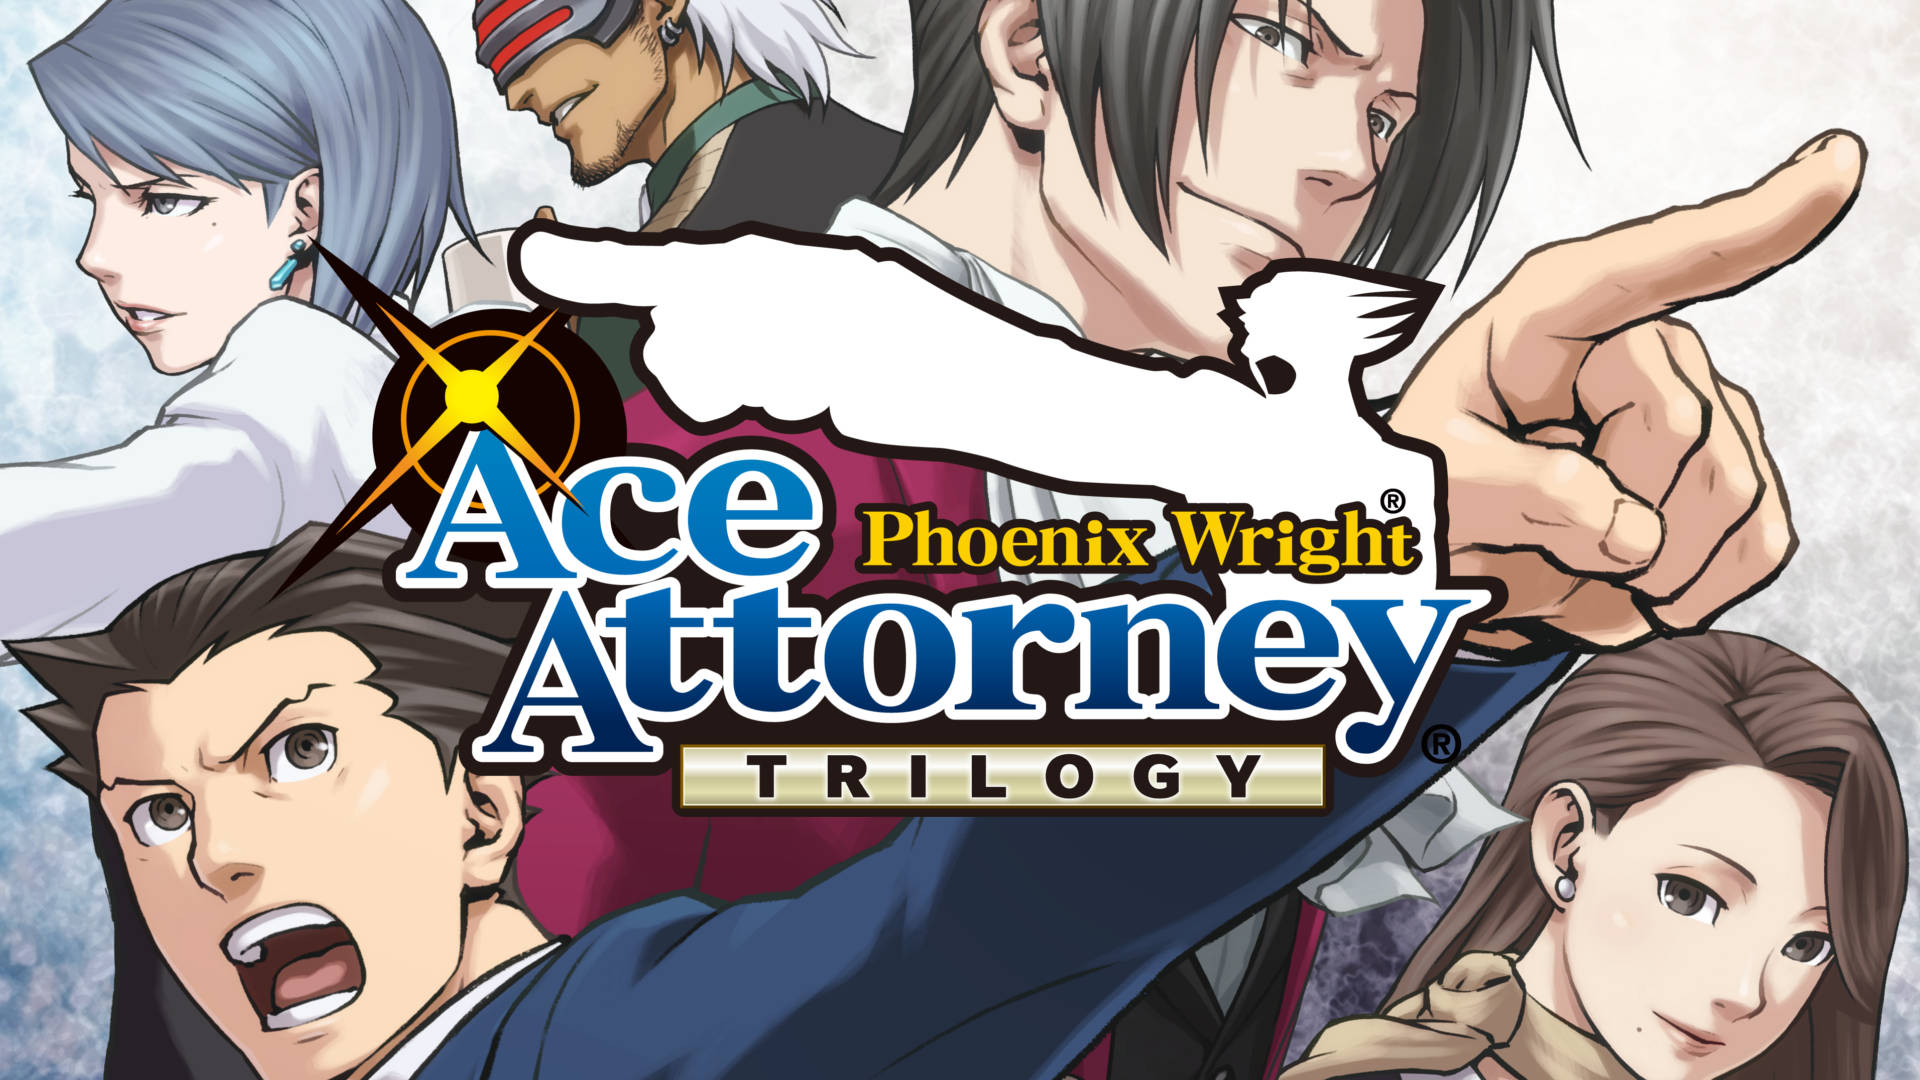 36 Phoenix Wright Ace Attorney Trilogy Wallpapers On